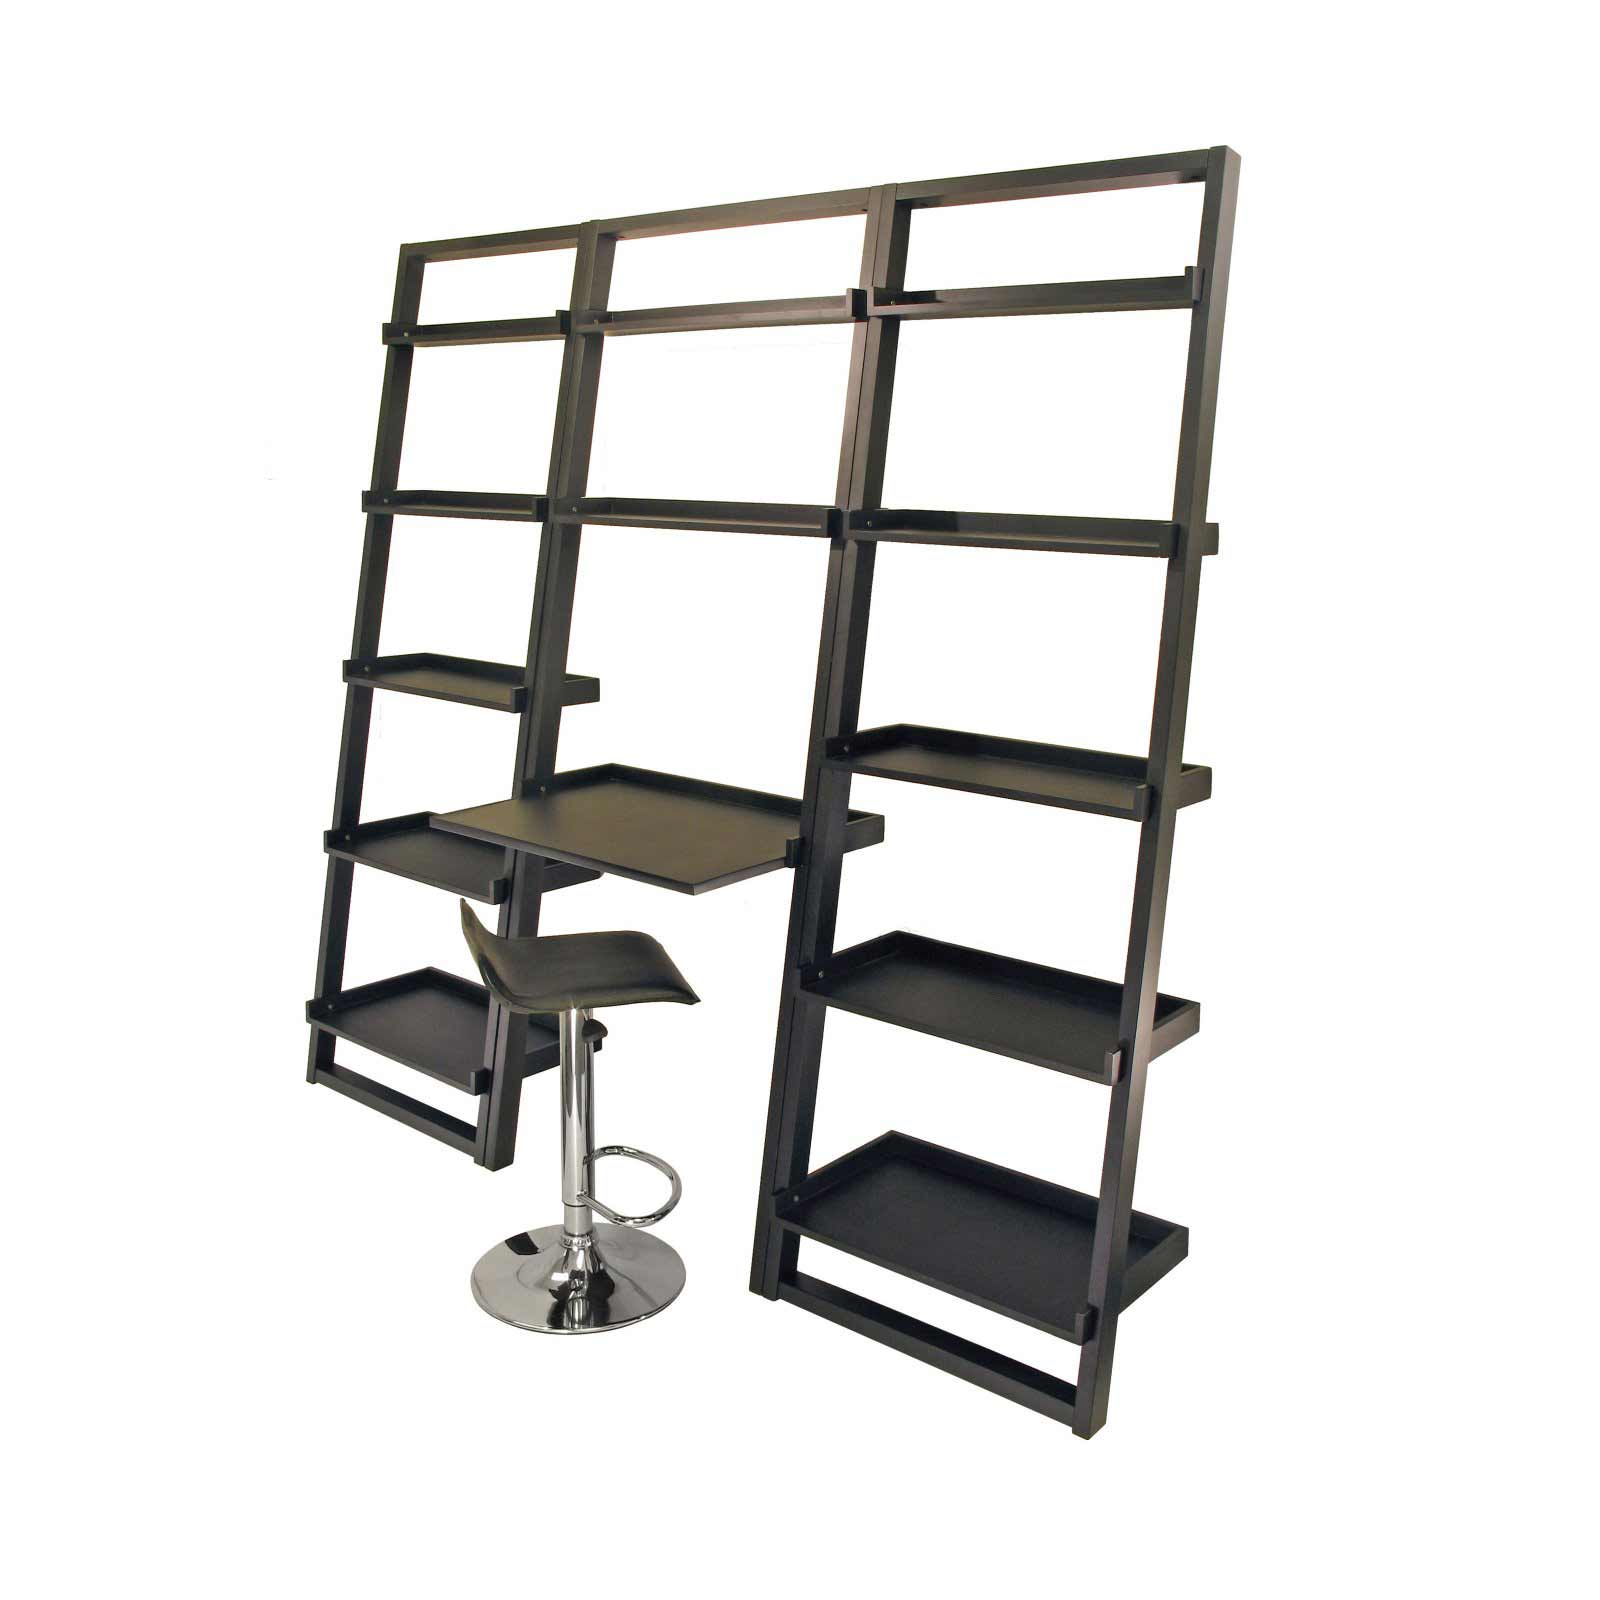 Loft Black Leaning Shelves with Work Desk